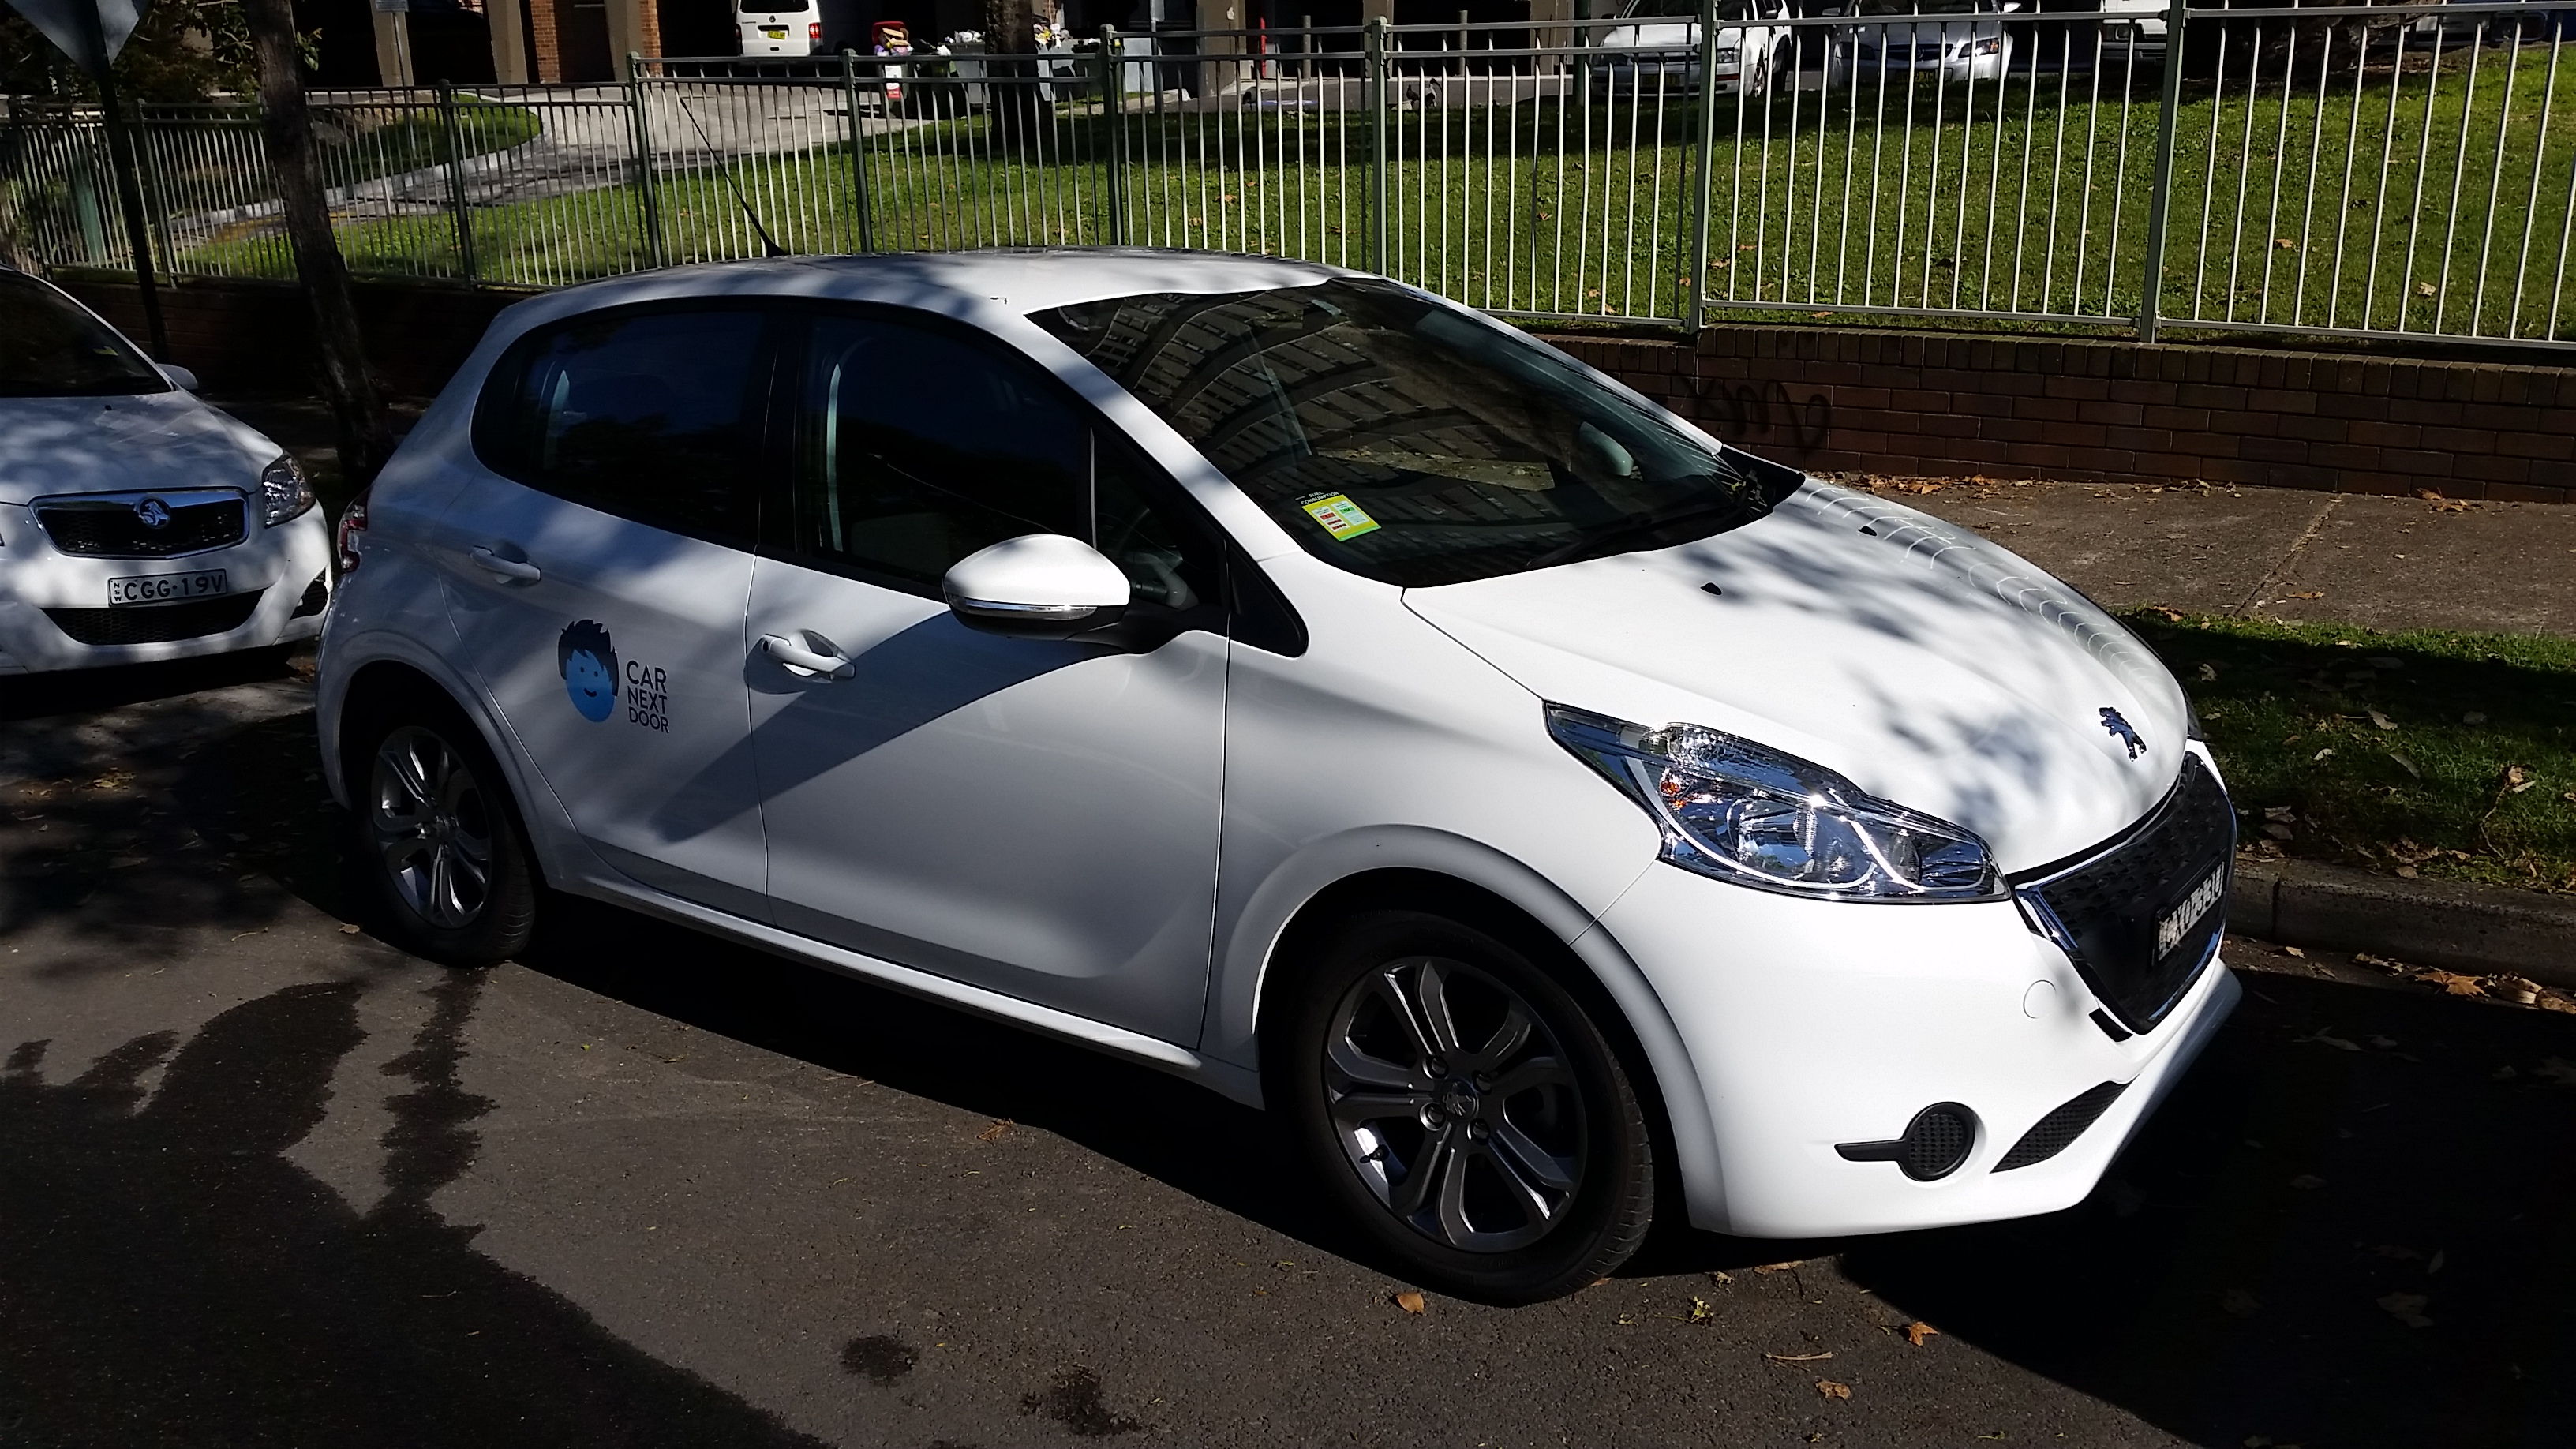 Picture of Jan's 2015 Peugeot 208